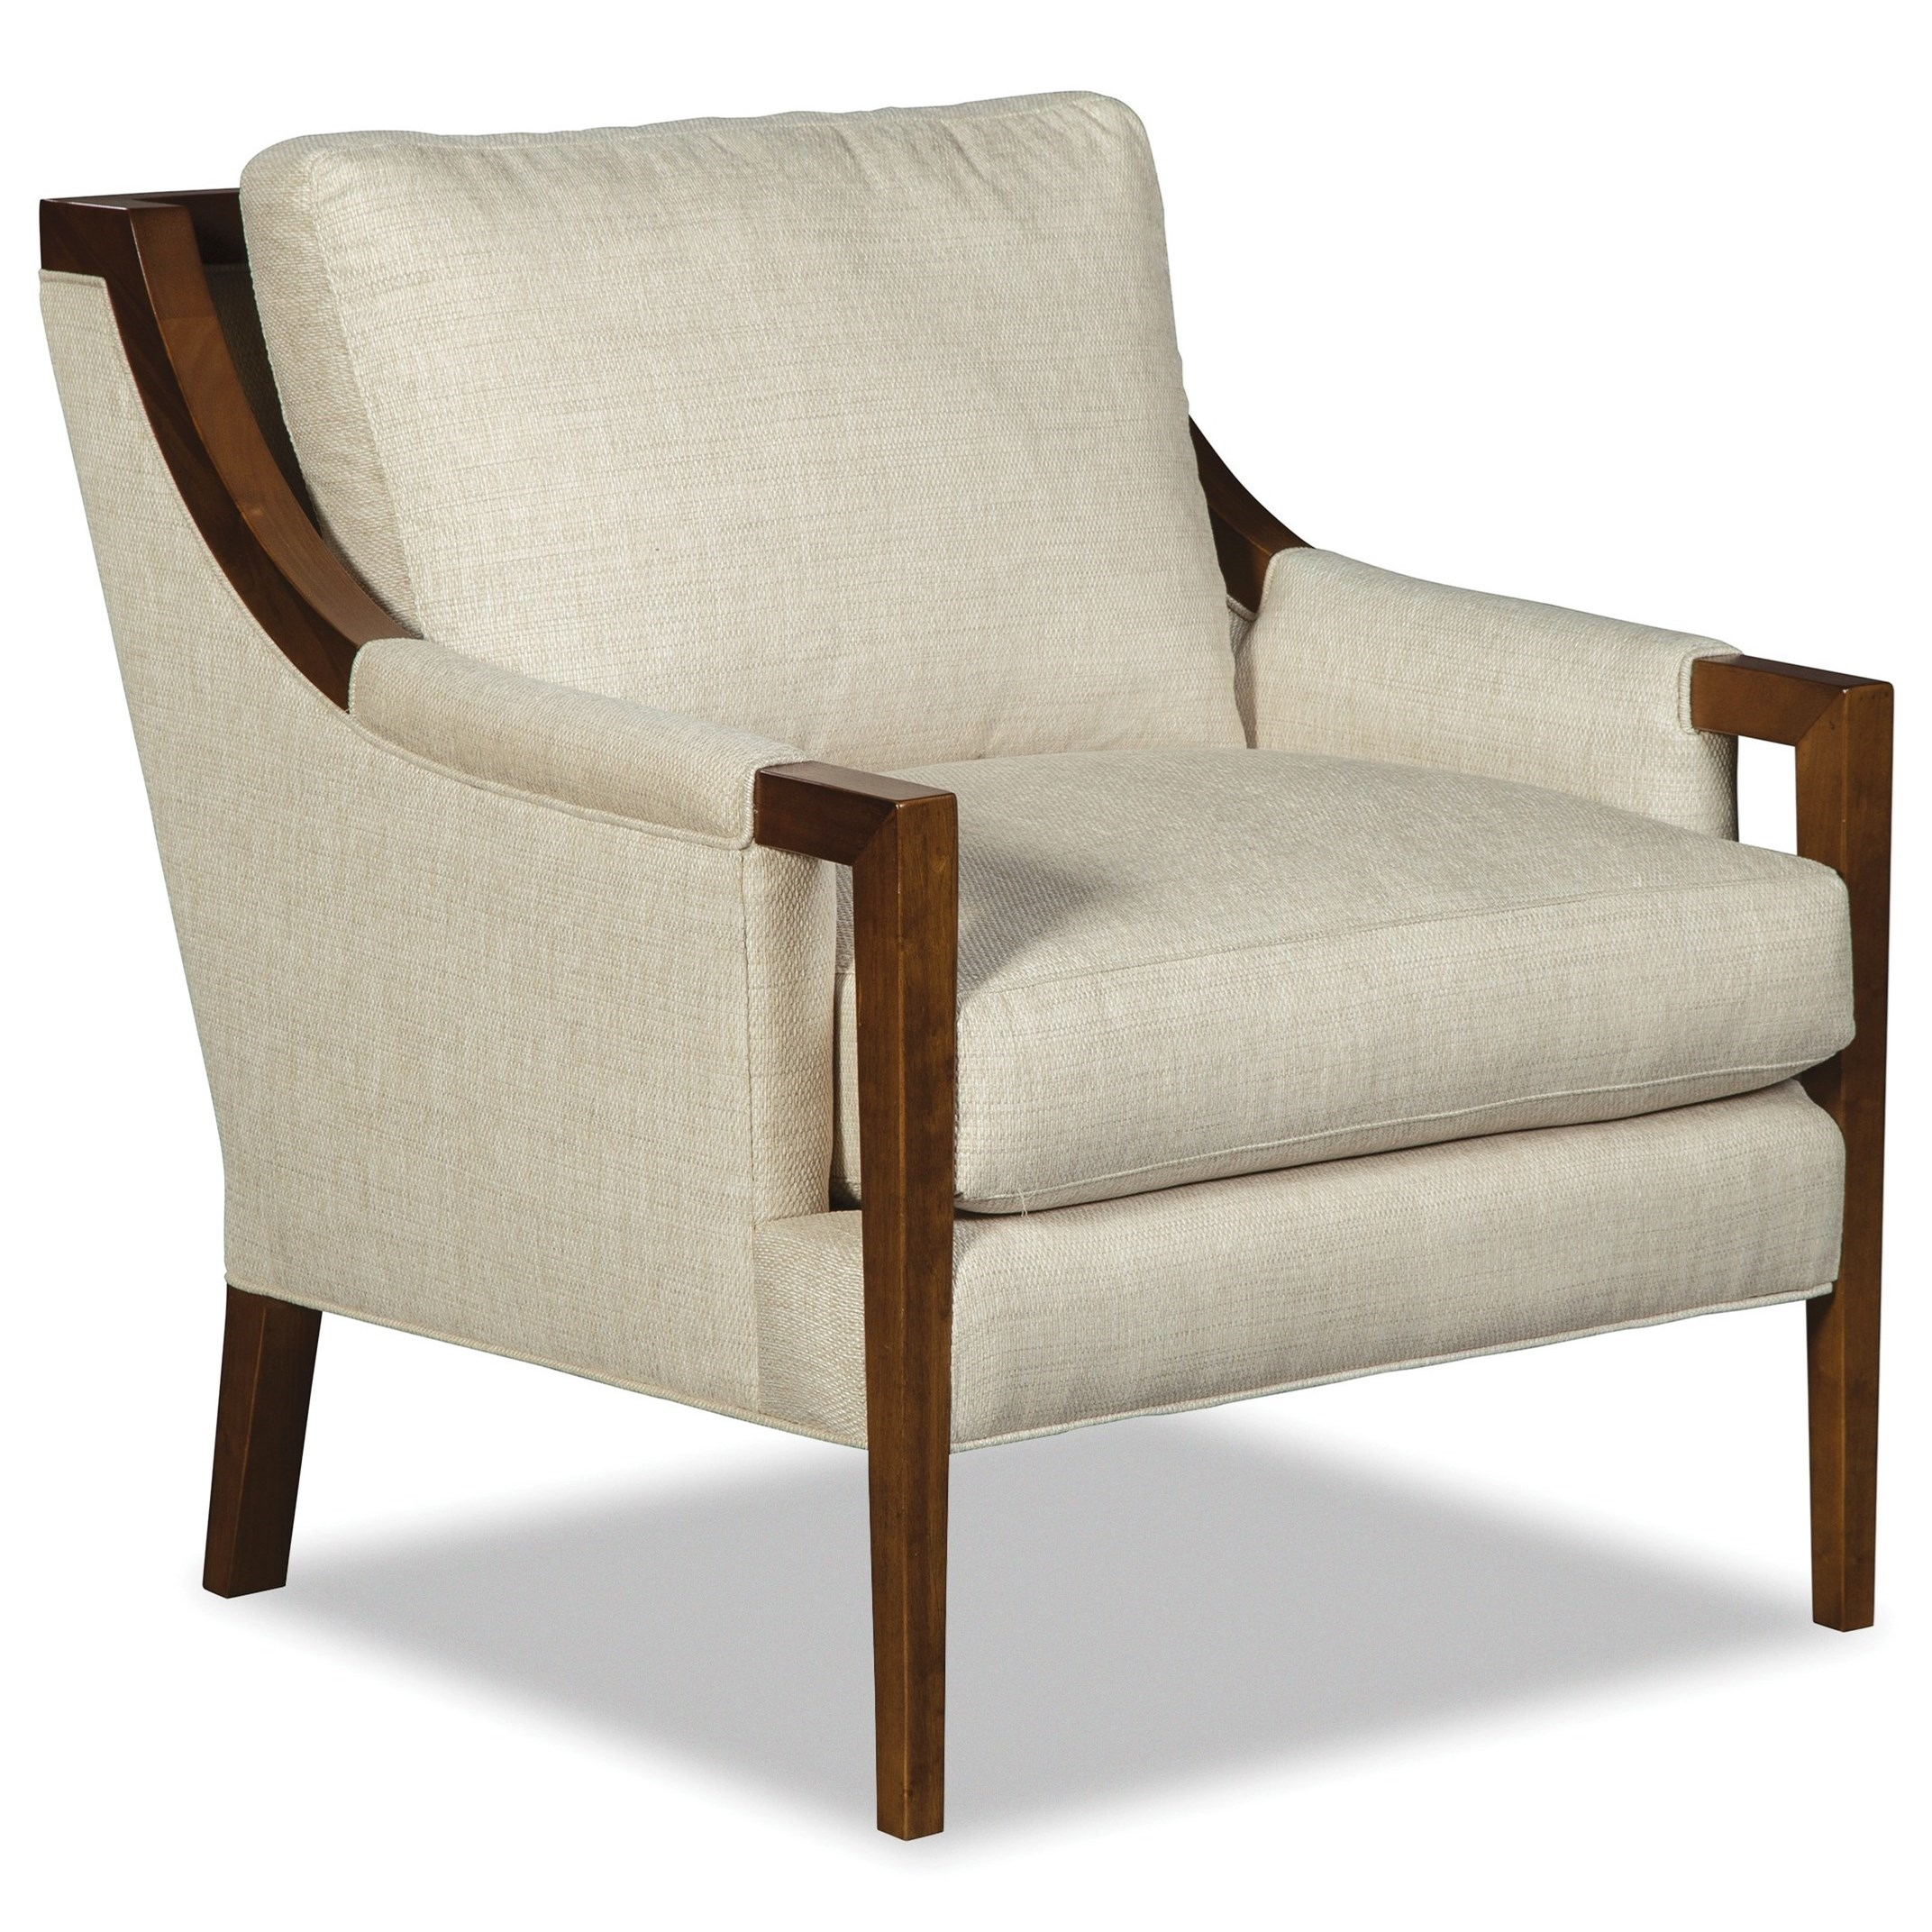 002910BD Wood Accent Chair by Craftmaster at Baer's Furniture